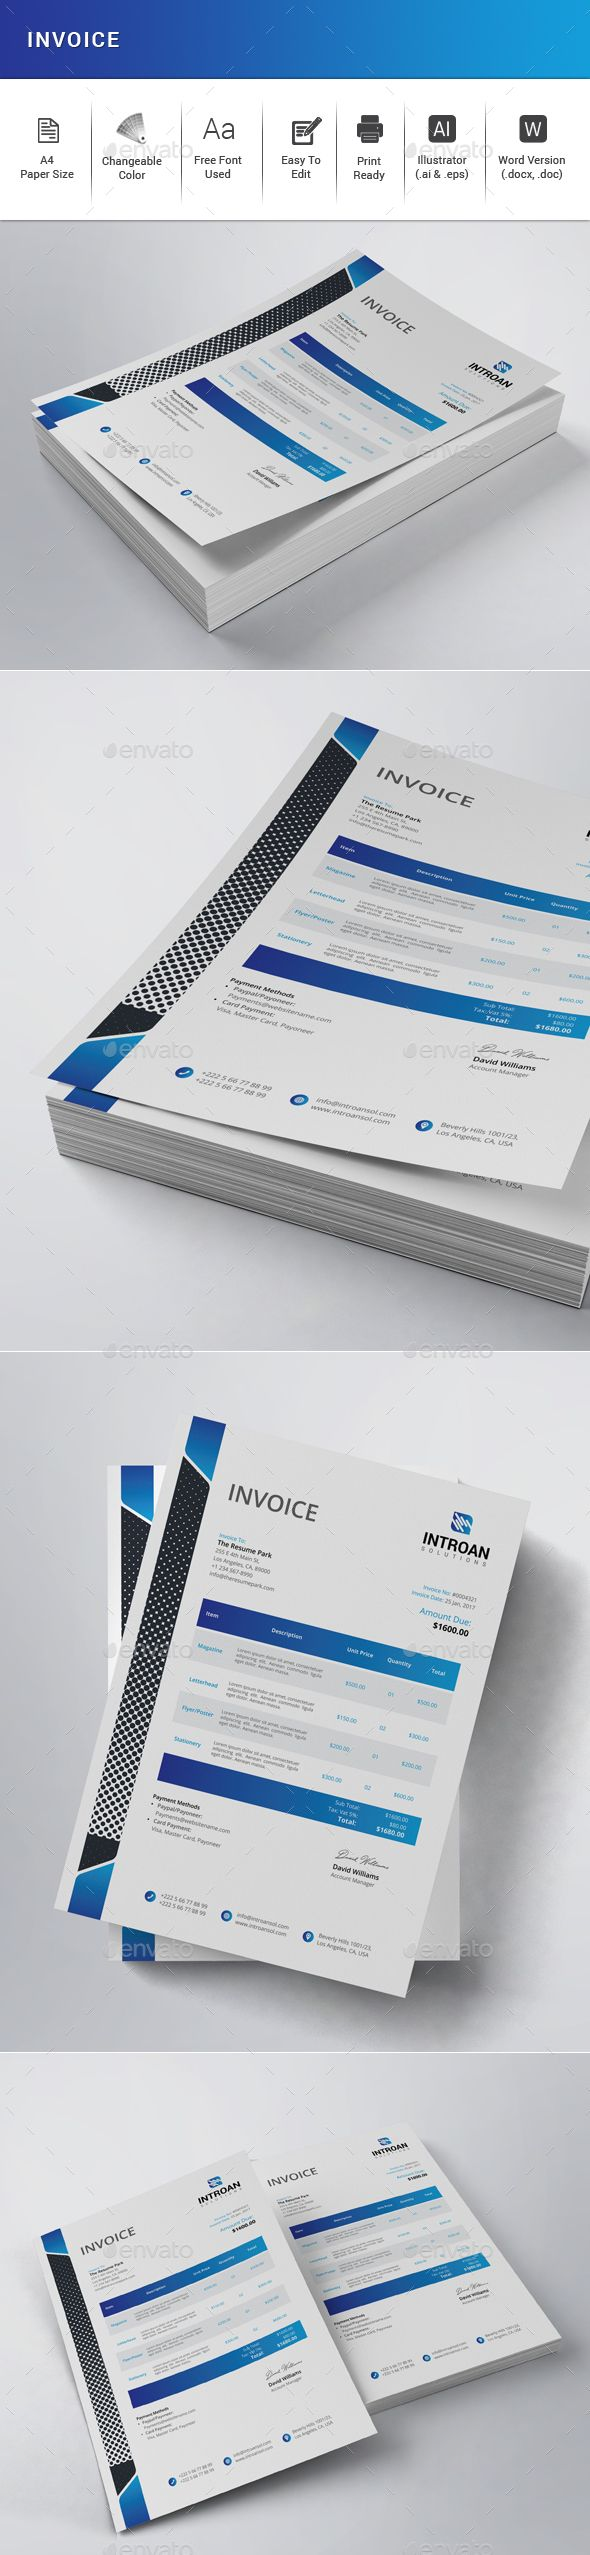 Invoice Features:  • Illustrator (.ai & .eps) • MS Word Included (.docx & .doc) • Very Easy to Edit • Page size A4 (210×297mm) • Bleed 0.25 inch • Only Free Fonts Used • CMYK, 300DPI, Print Ready